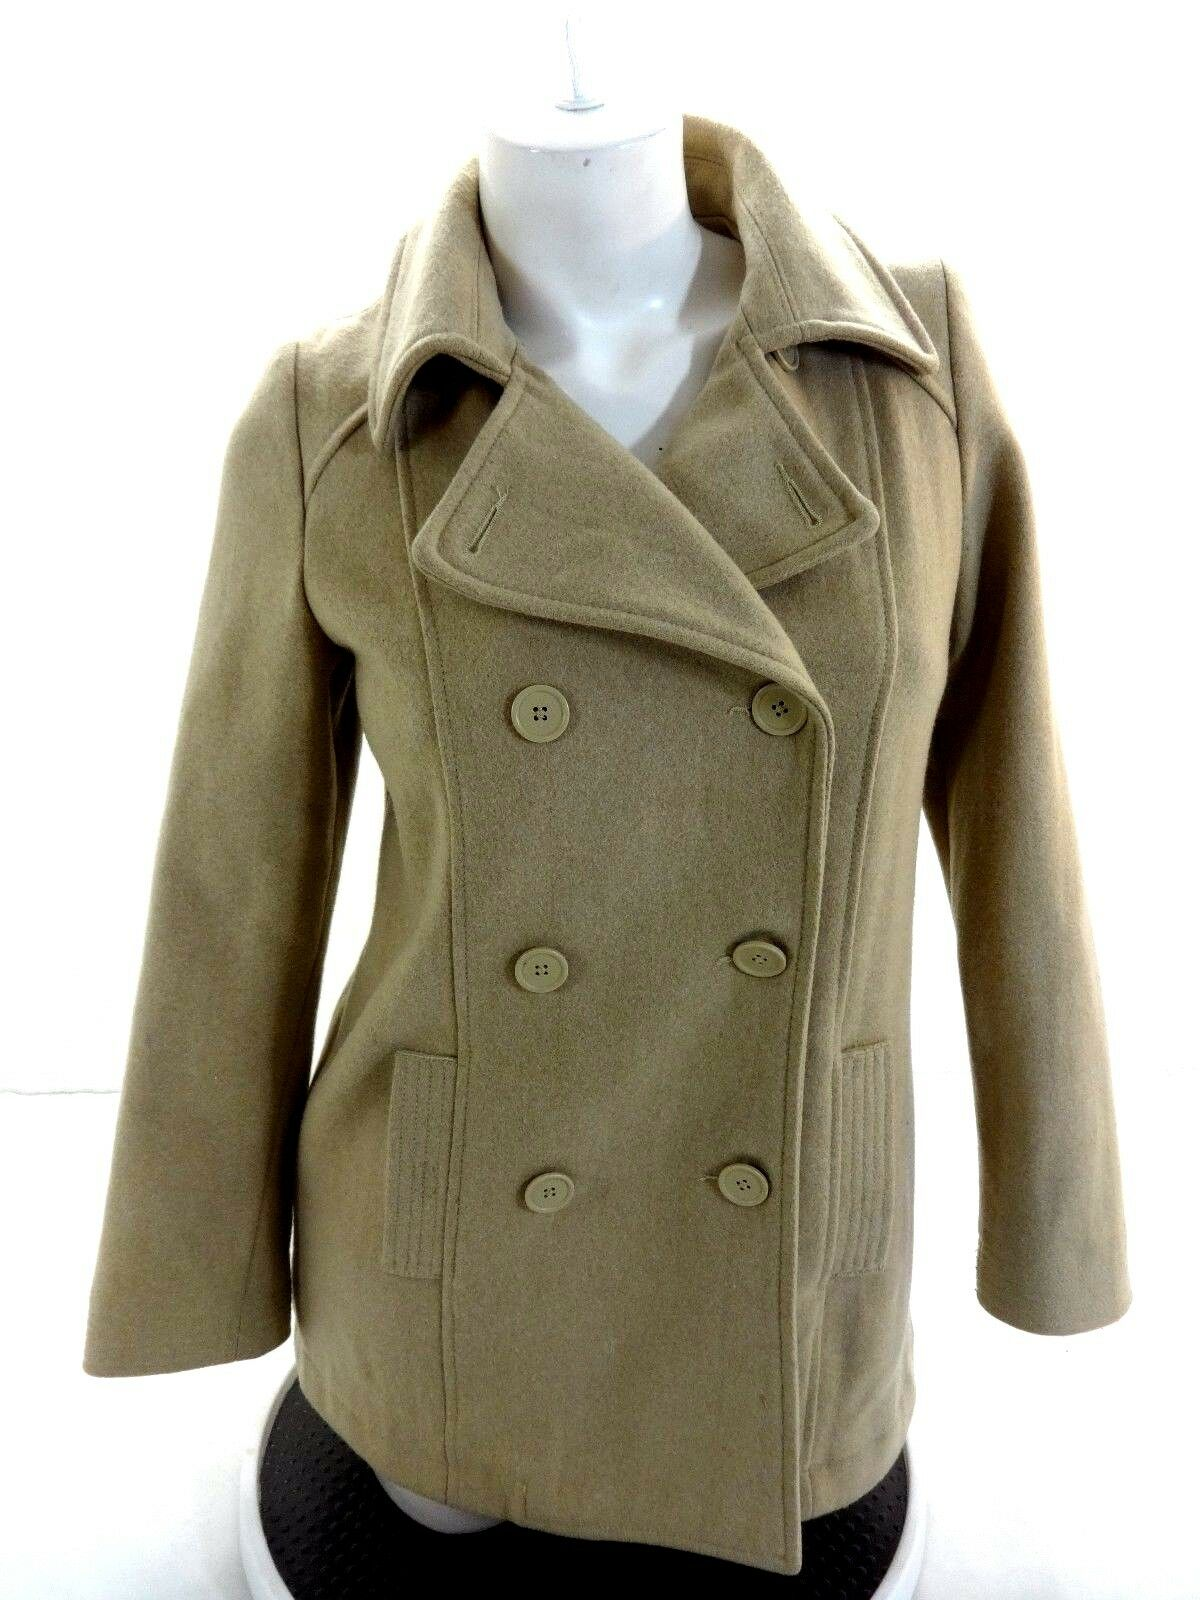 59b84ce6eea Details about OLD NAVY WOMENS TAN WOOL BLEND PEACOAT JACKET SIZE XS